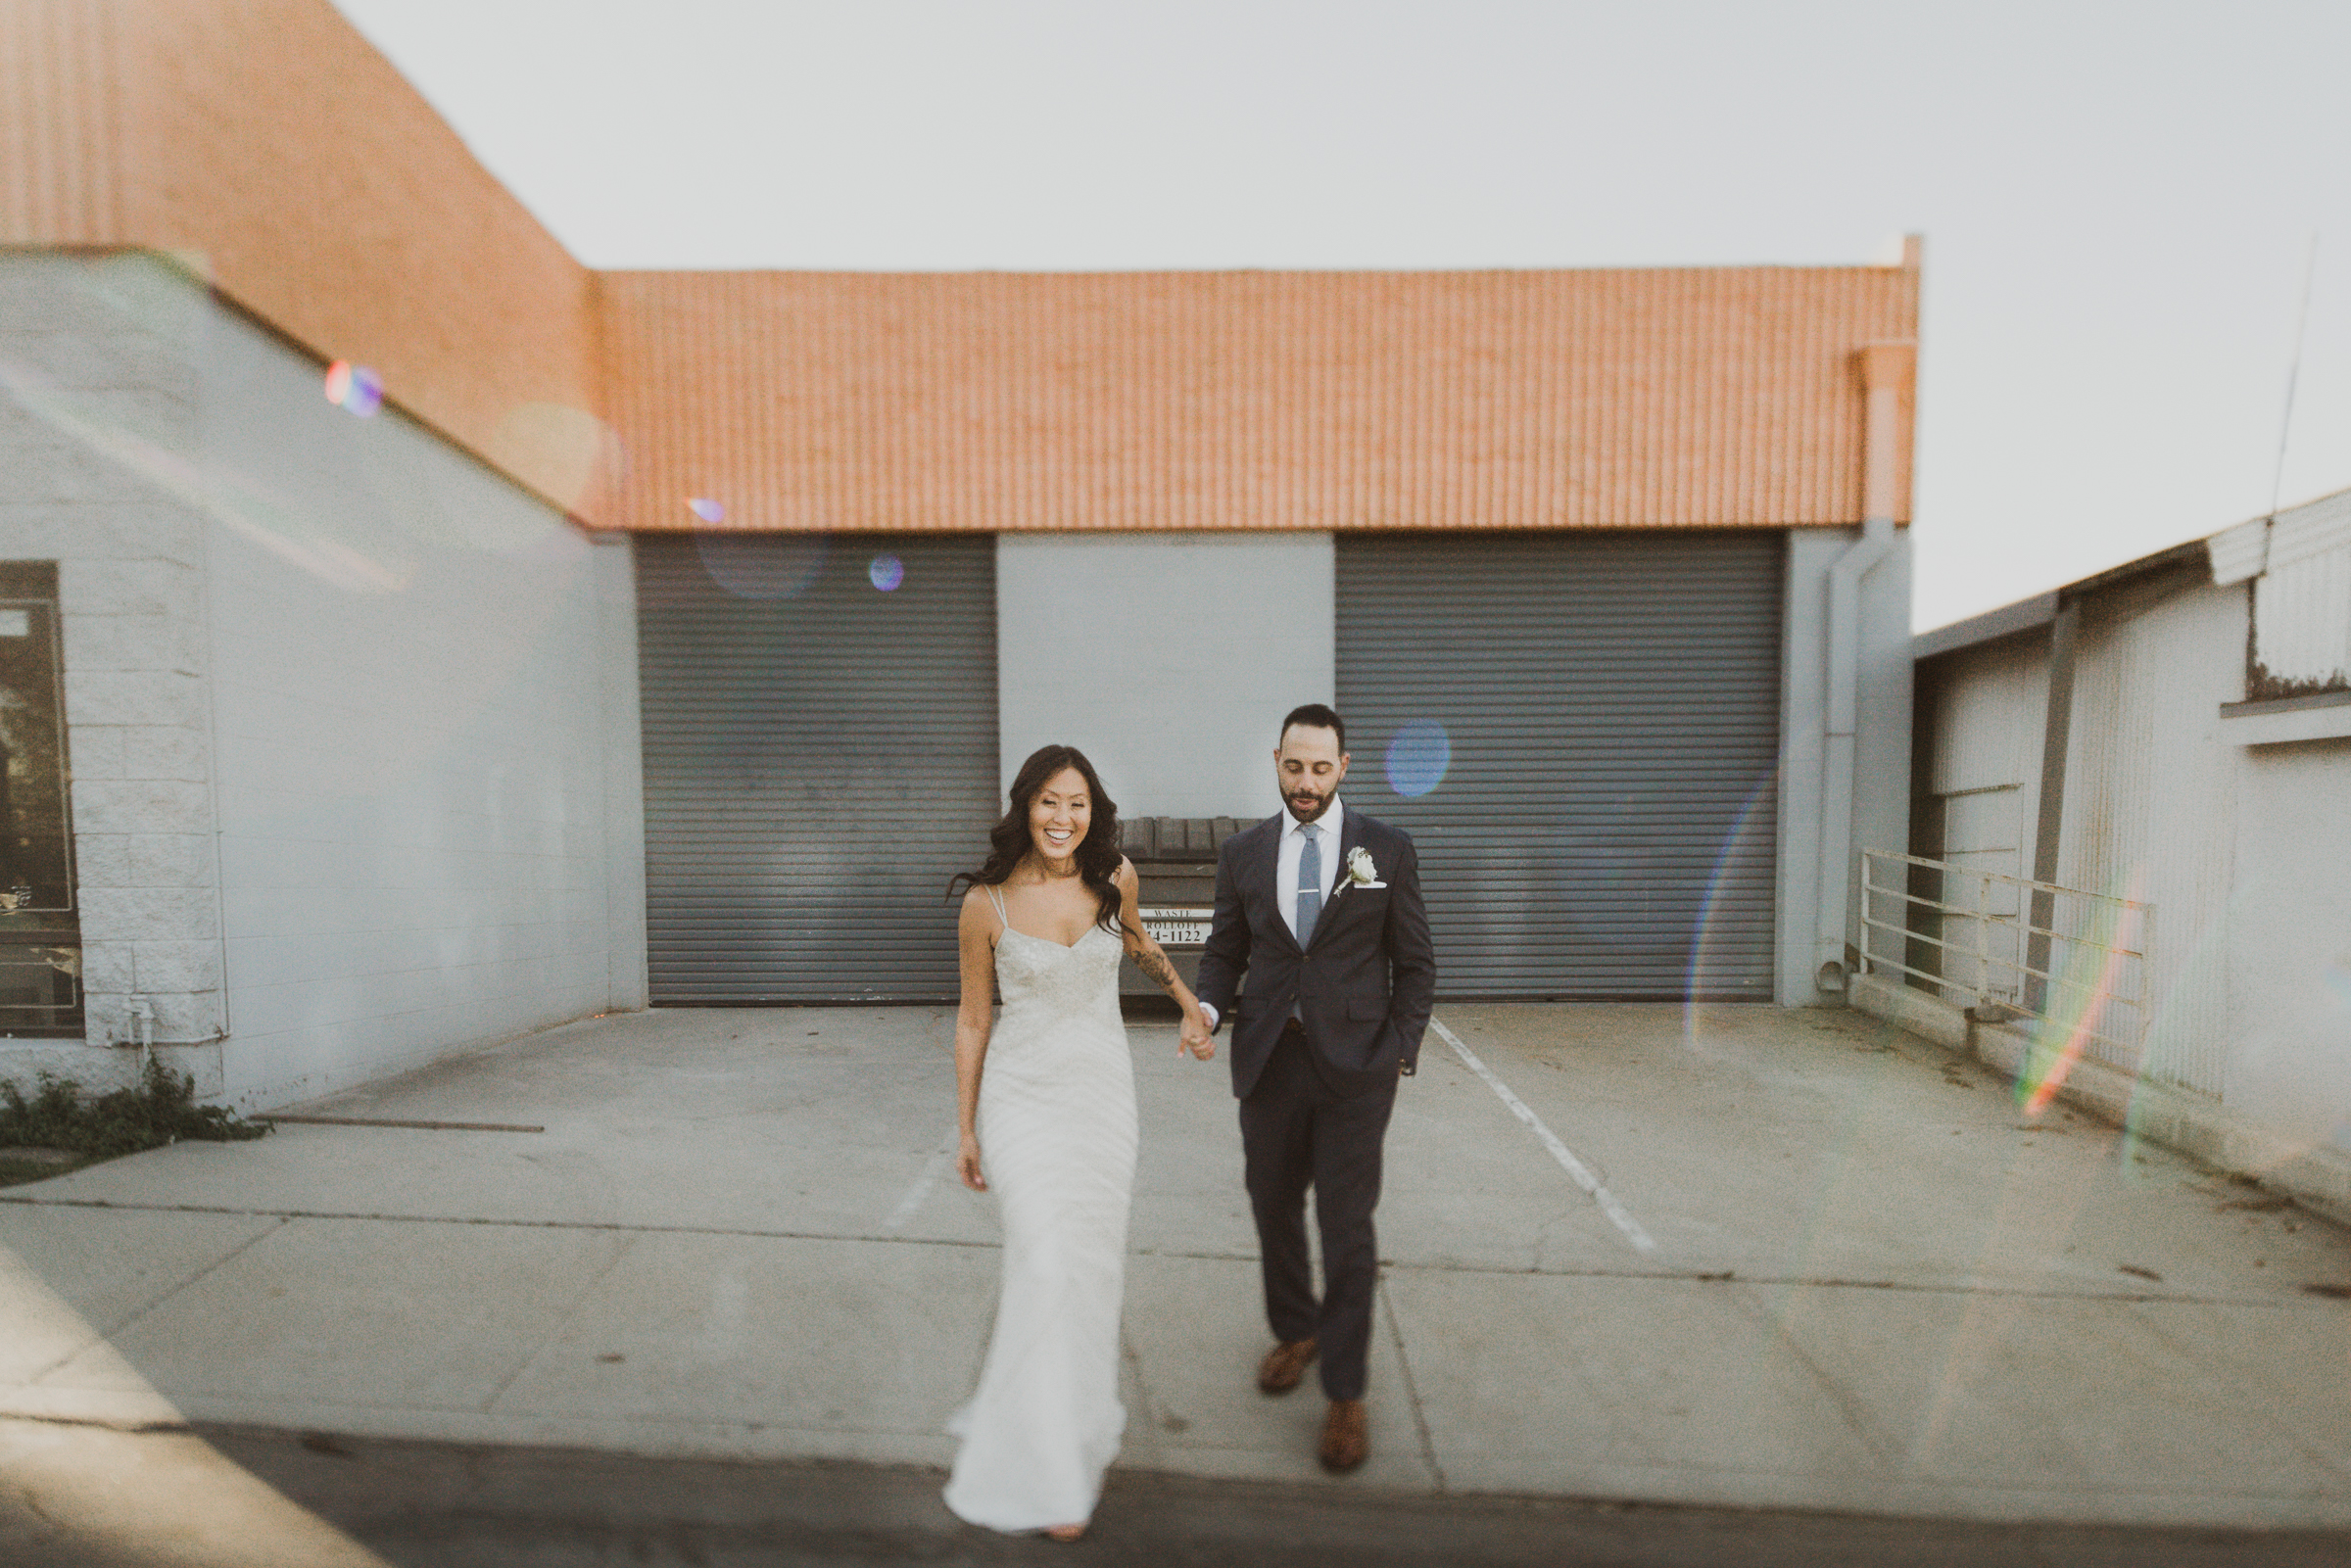 ©Isaiah + Taylor Photography - Big Door Studios Wedding, El Segundo, Los Angeles Wedding Photographer-34.jpg